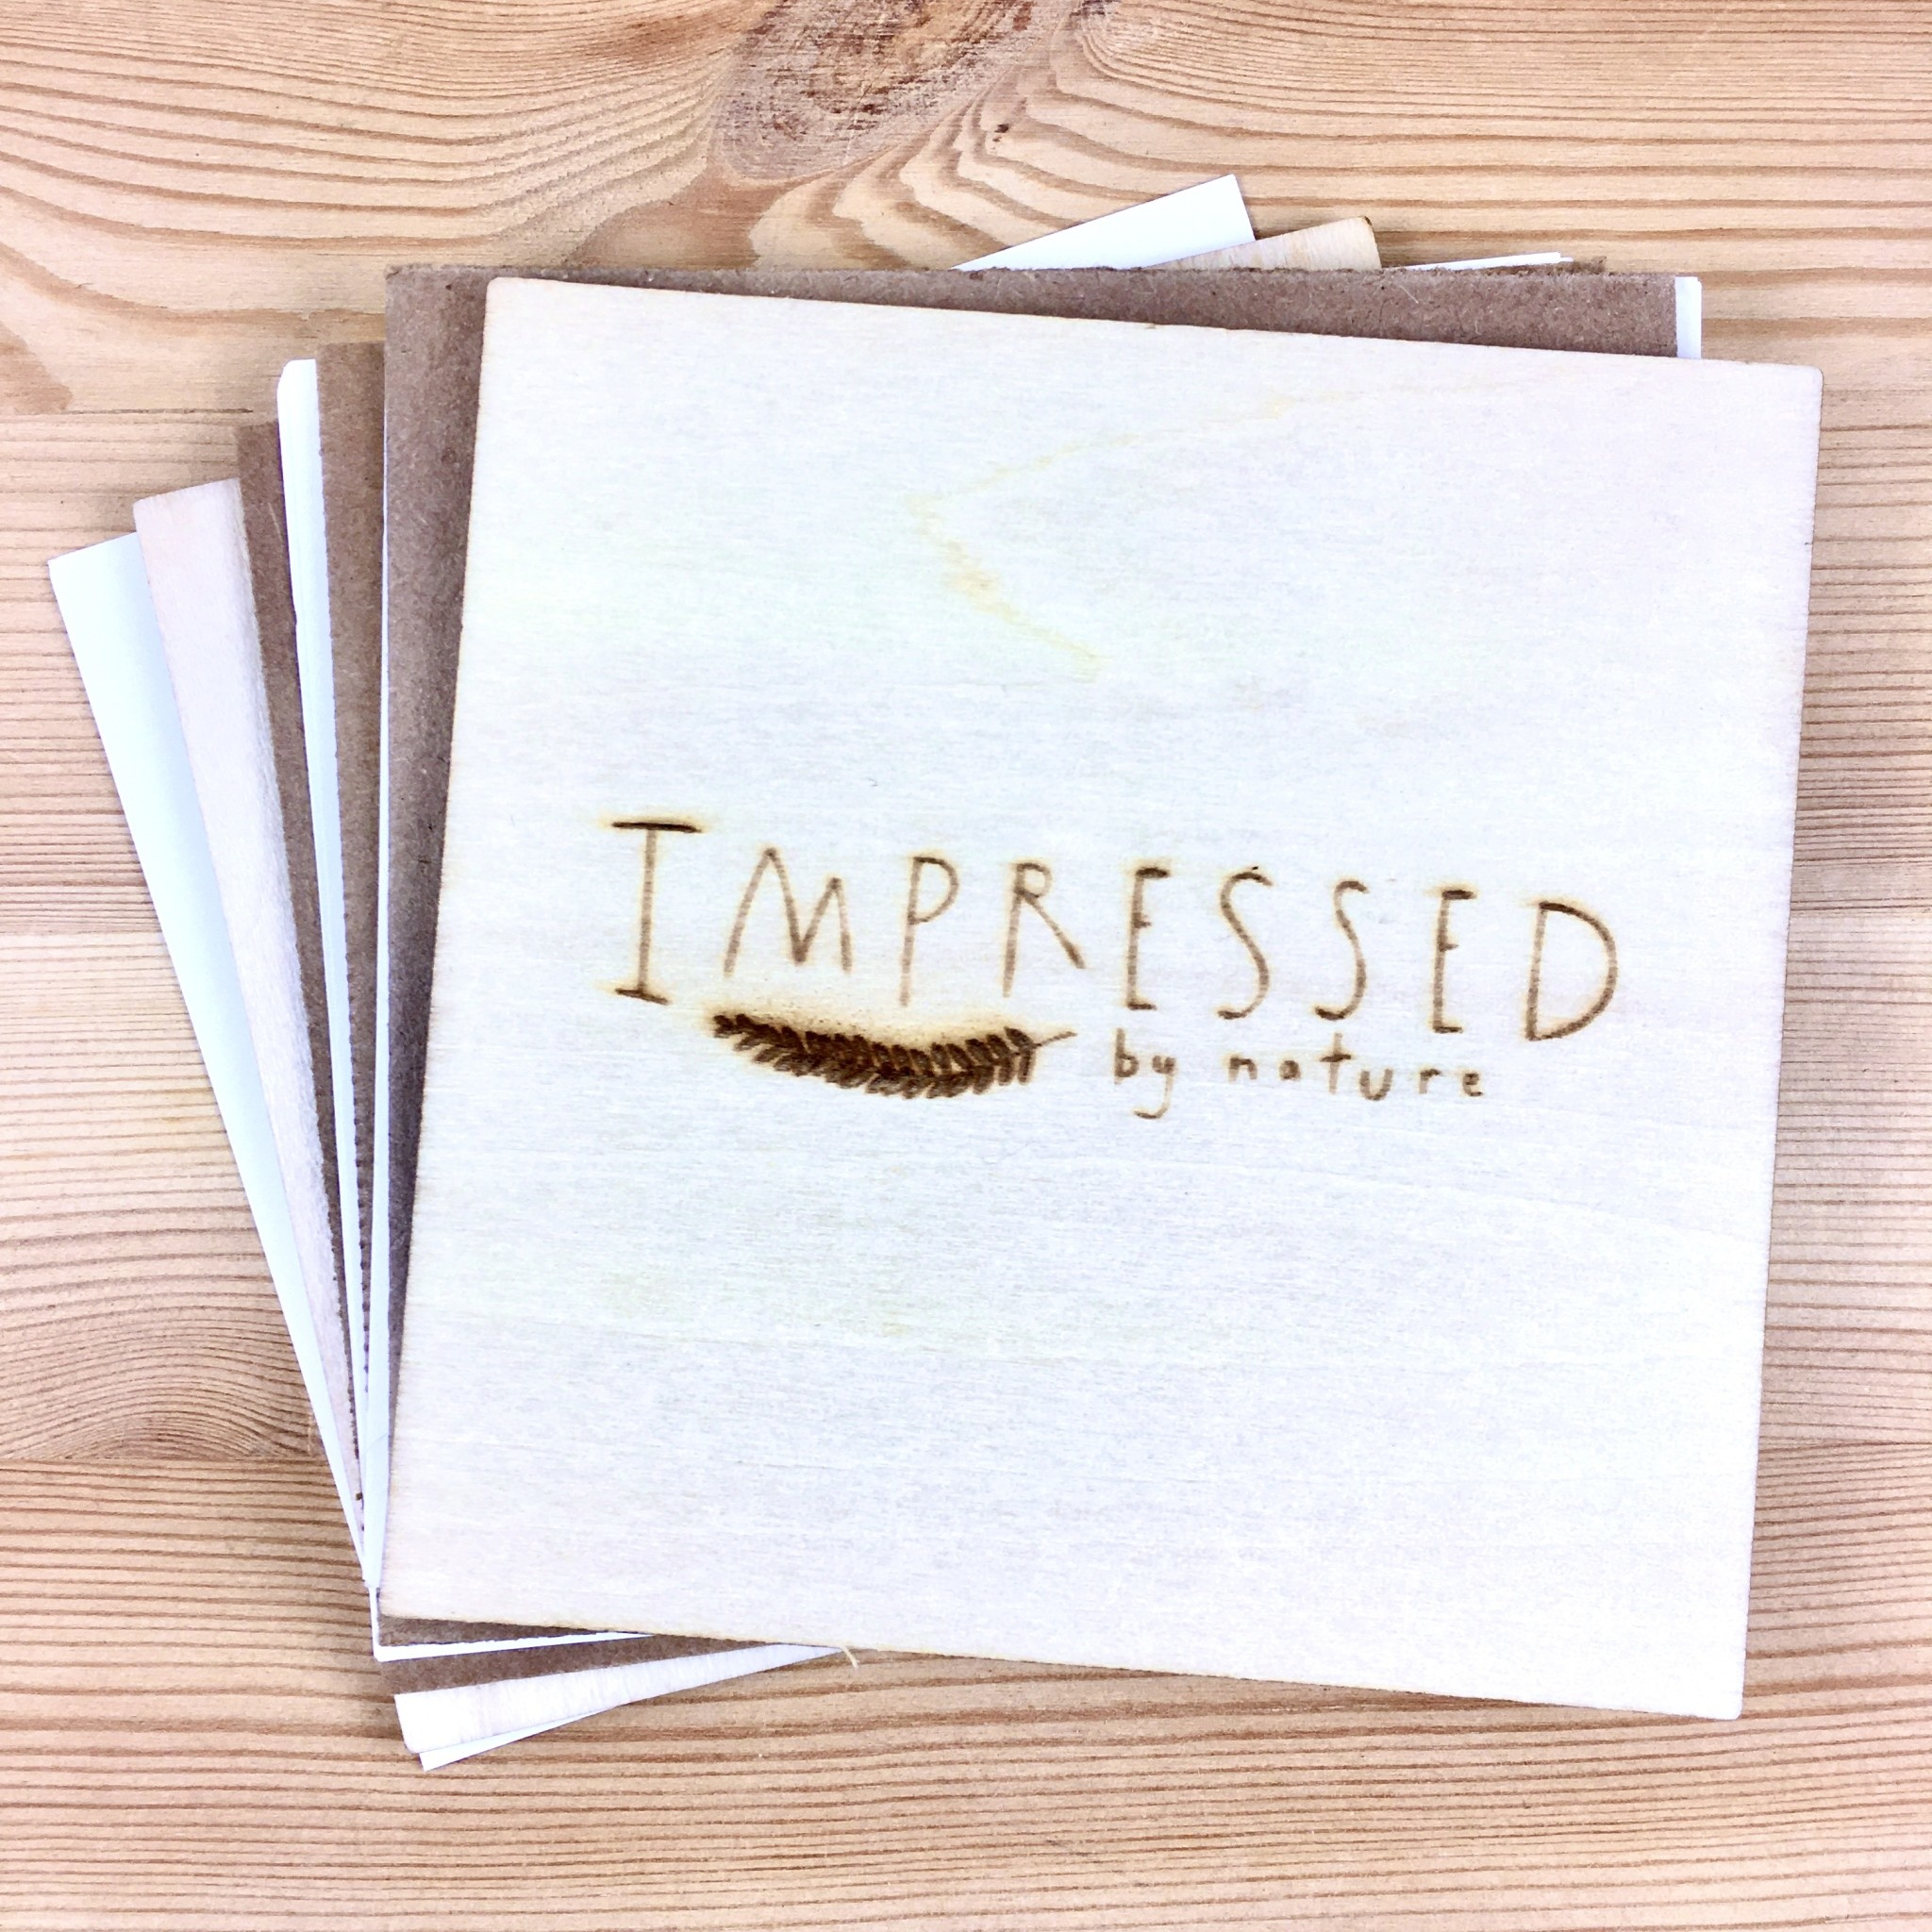 Impressed by Nature Travel Size Wooden Flower Press Kit